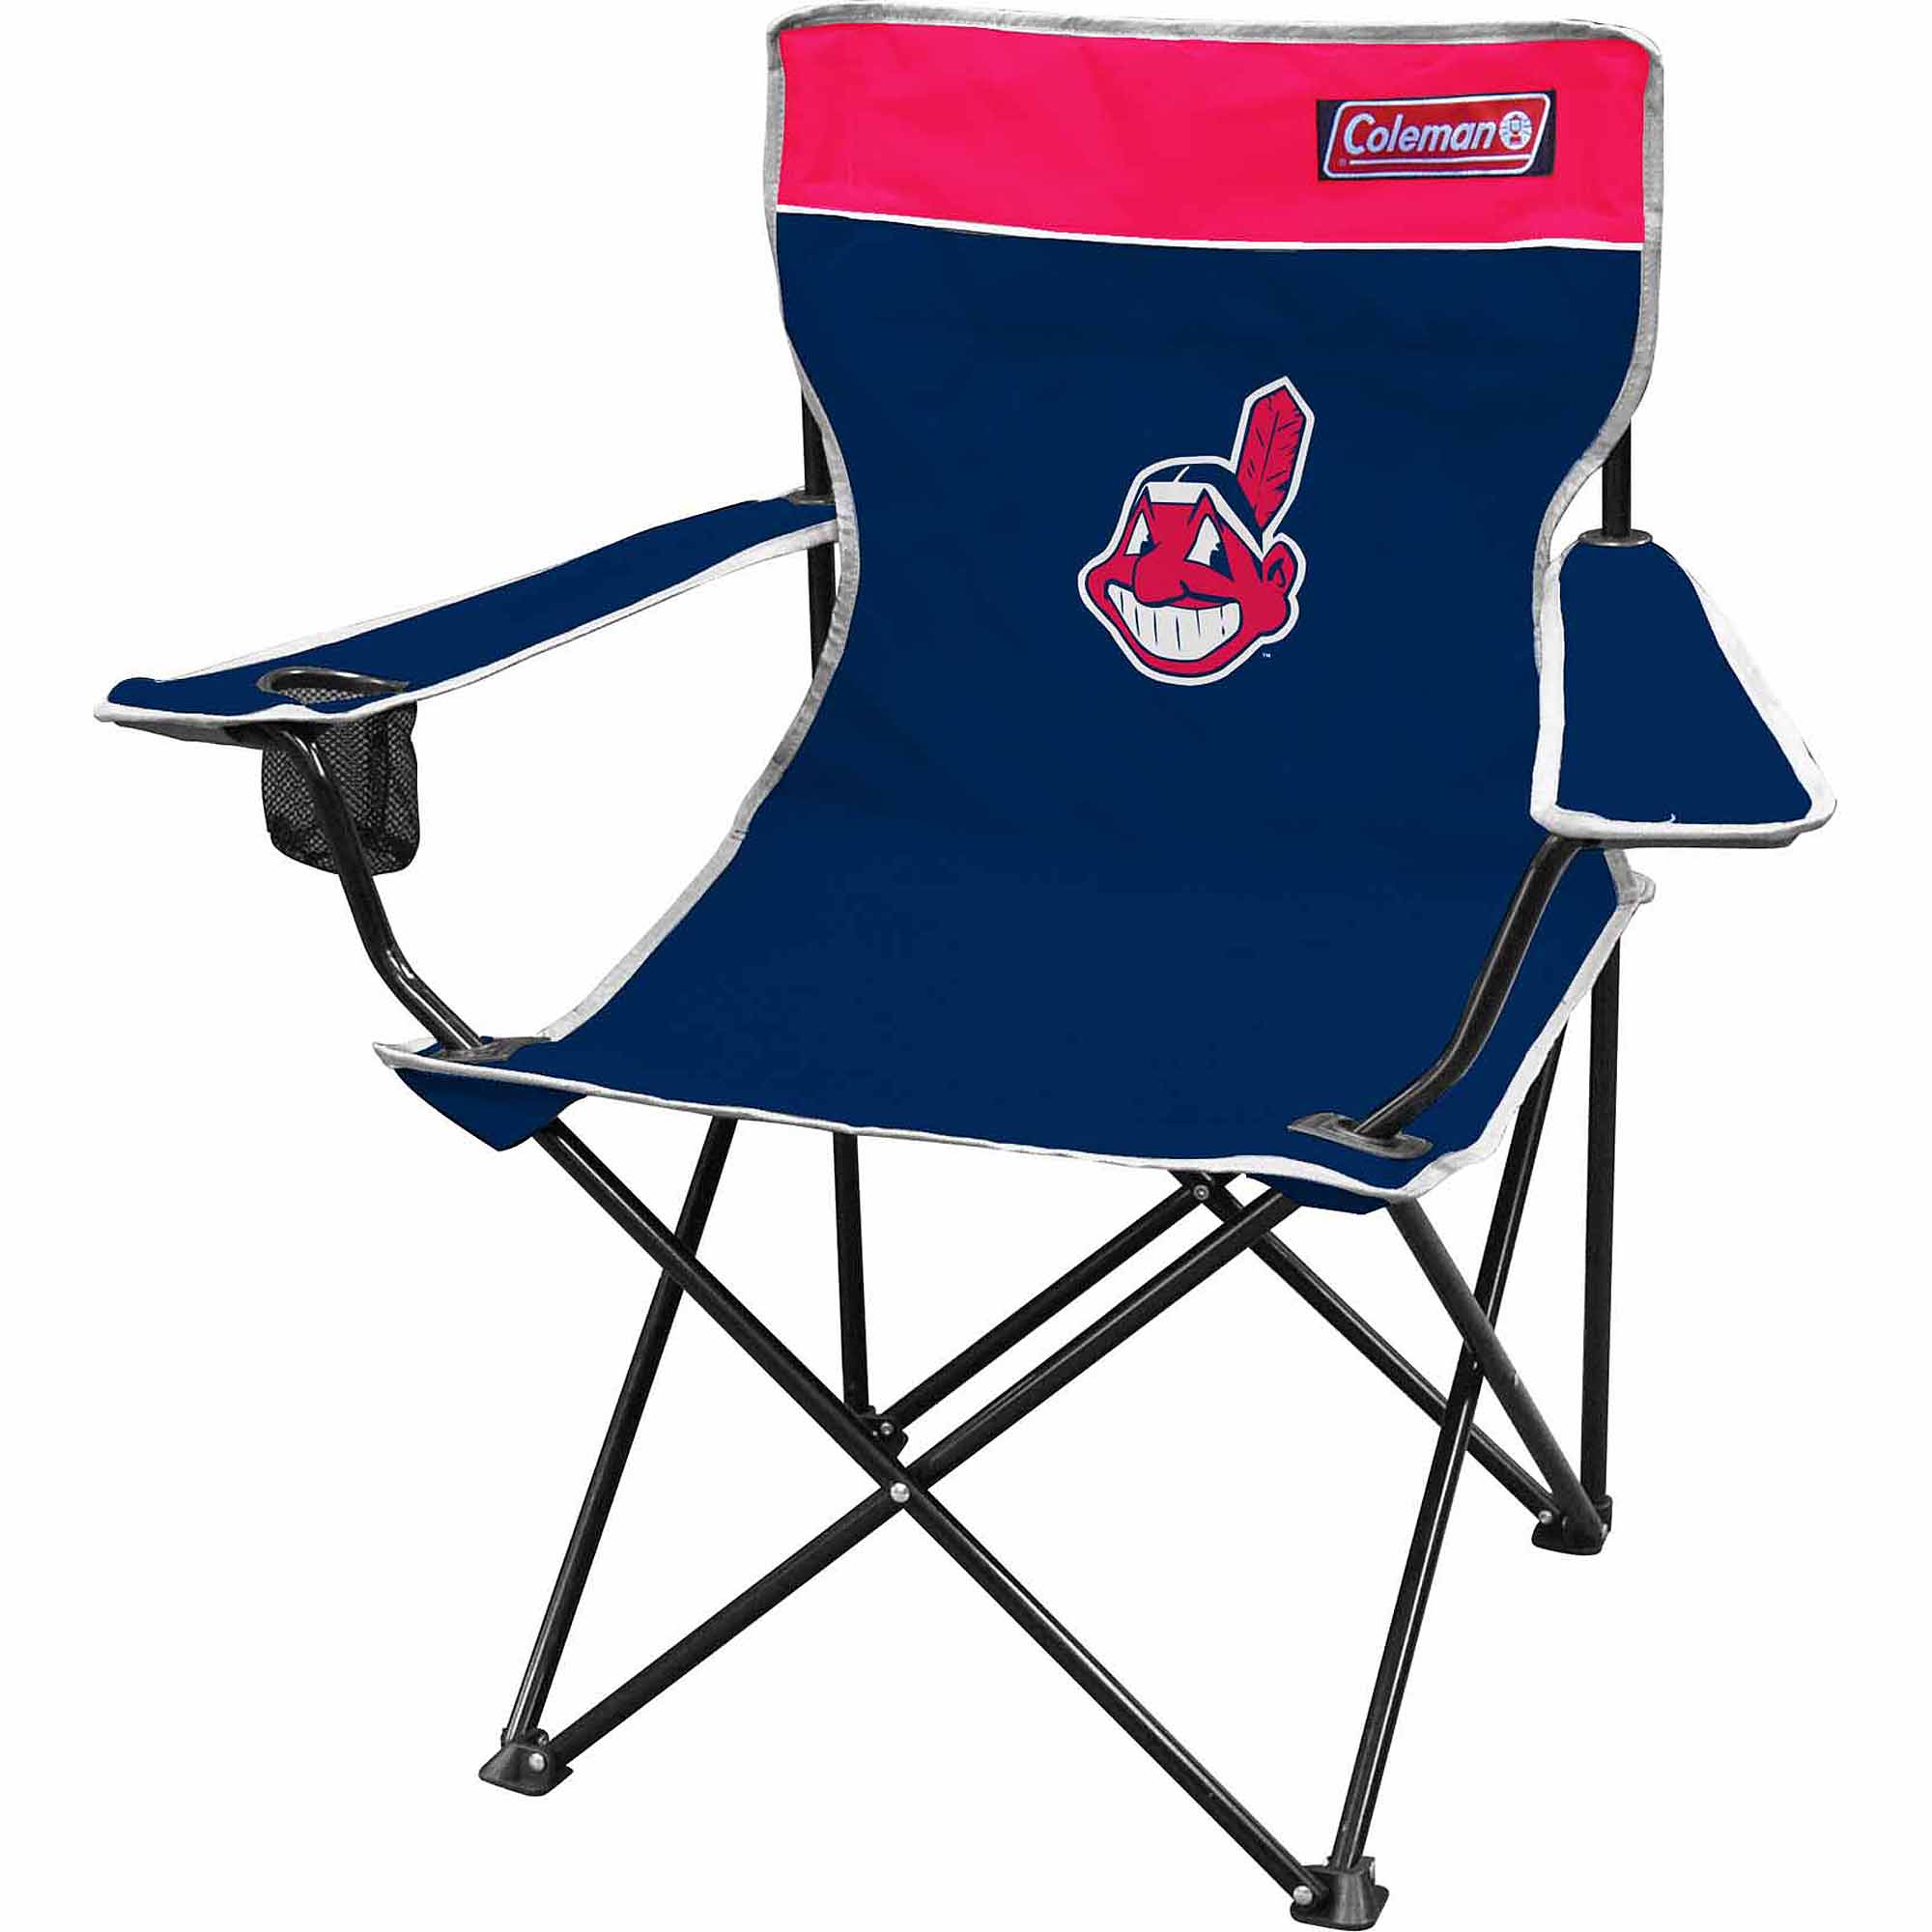 Coleman MLB Cleveland Indians Quad Chair